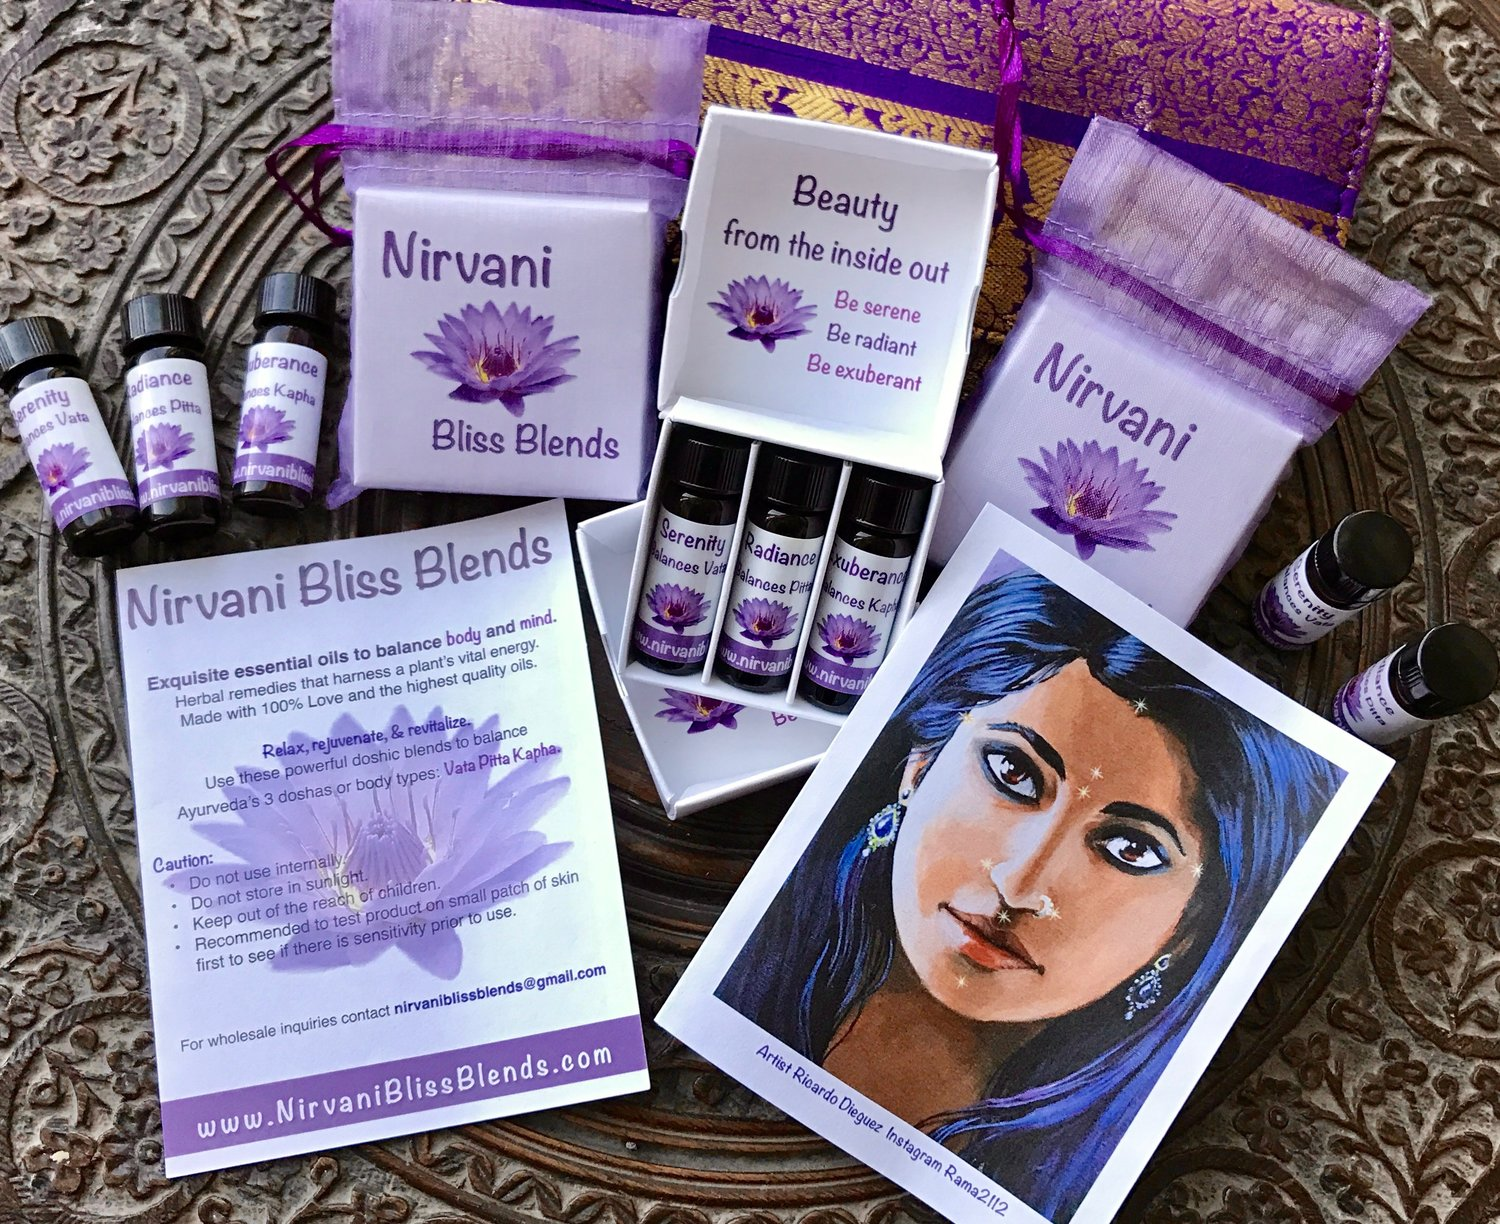 Nirvani Bliss Blends